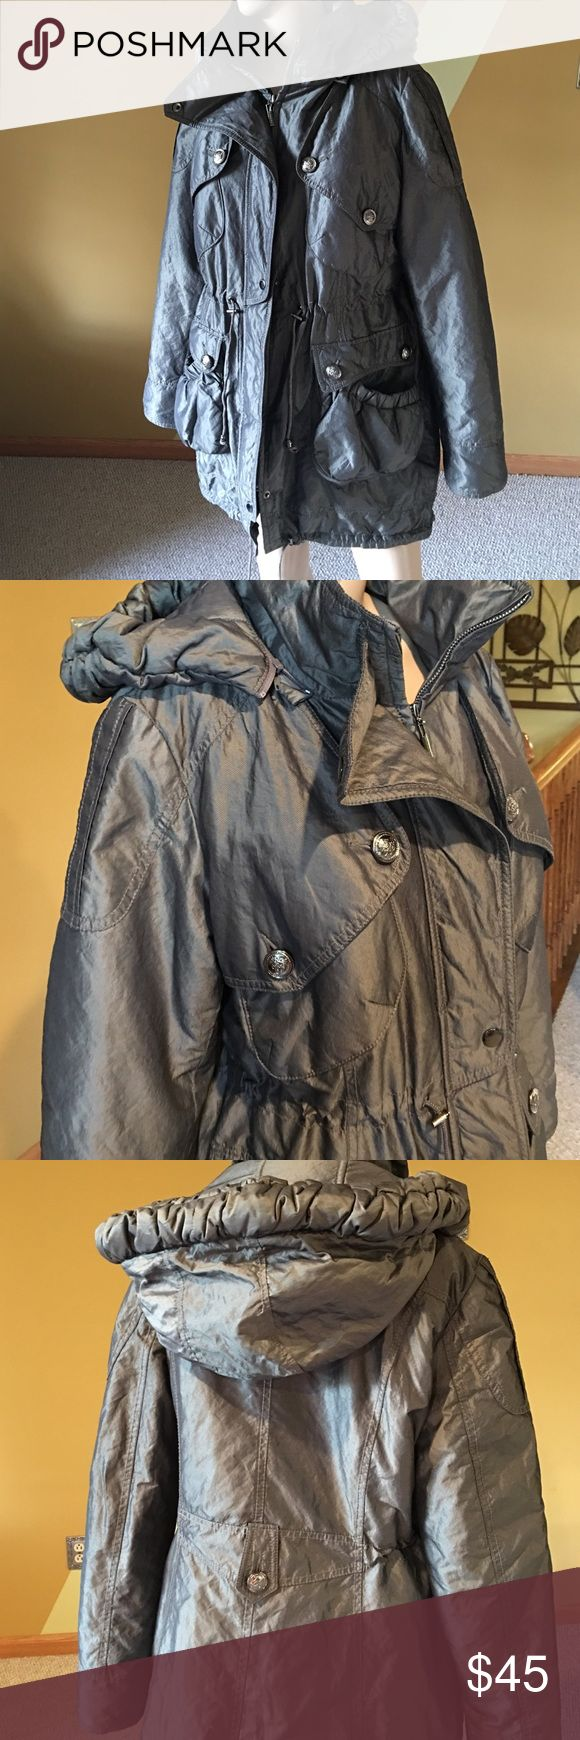 Laundry Jacket Gray winter jacket in excellent condition Laundry by Shelli Segal Jackets & Coats Puffers